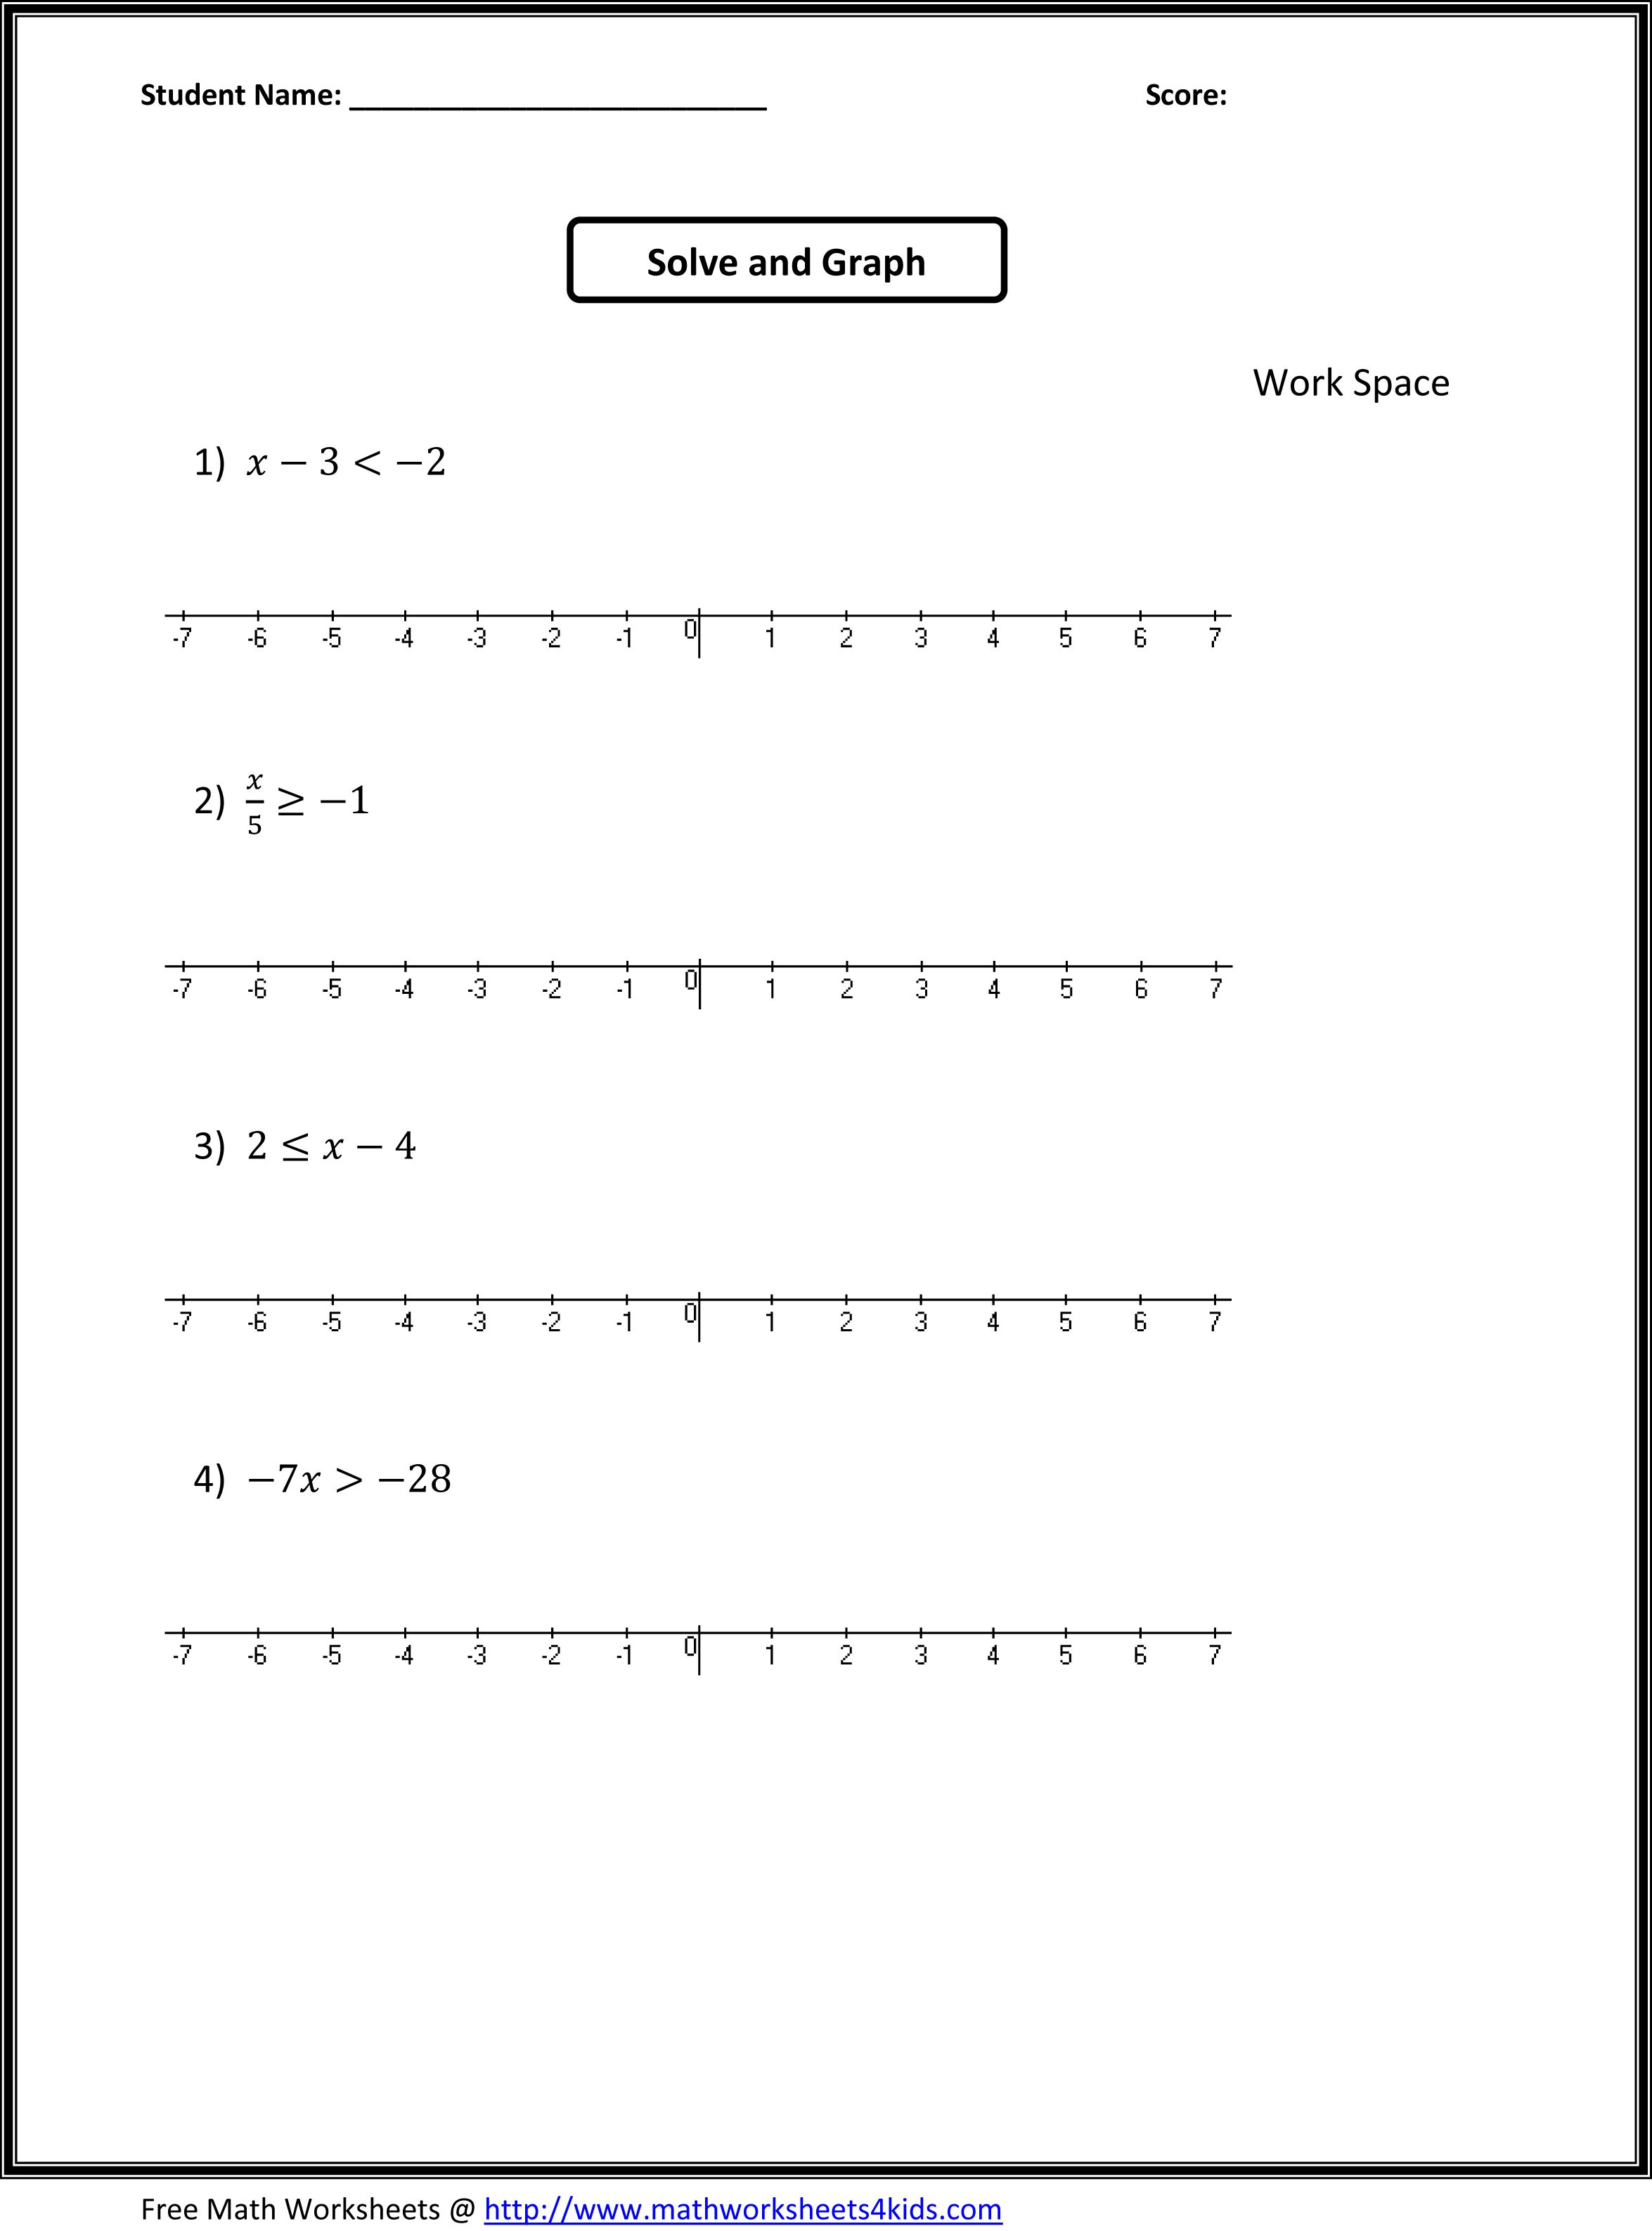 math worksheet : 1000 images about math on pinterest  7th grade math worksheets  : Worksheets For Grade 7 Math